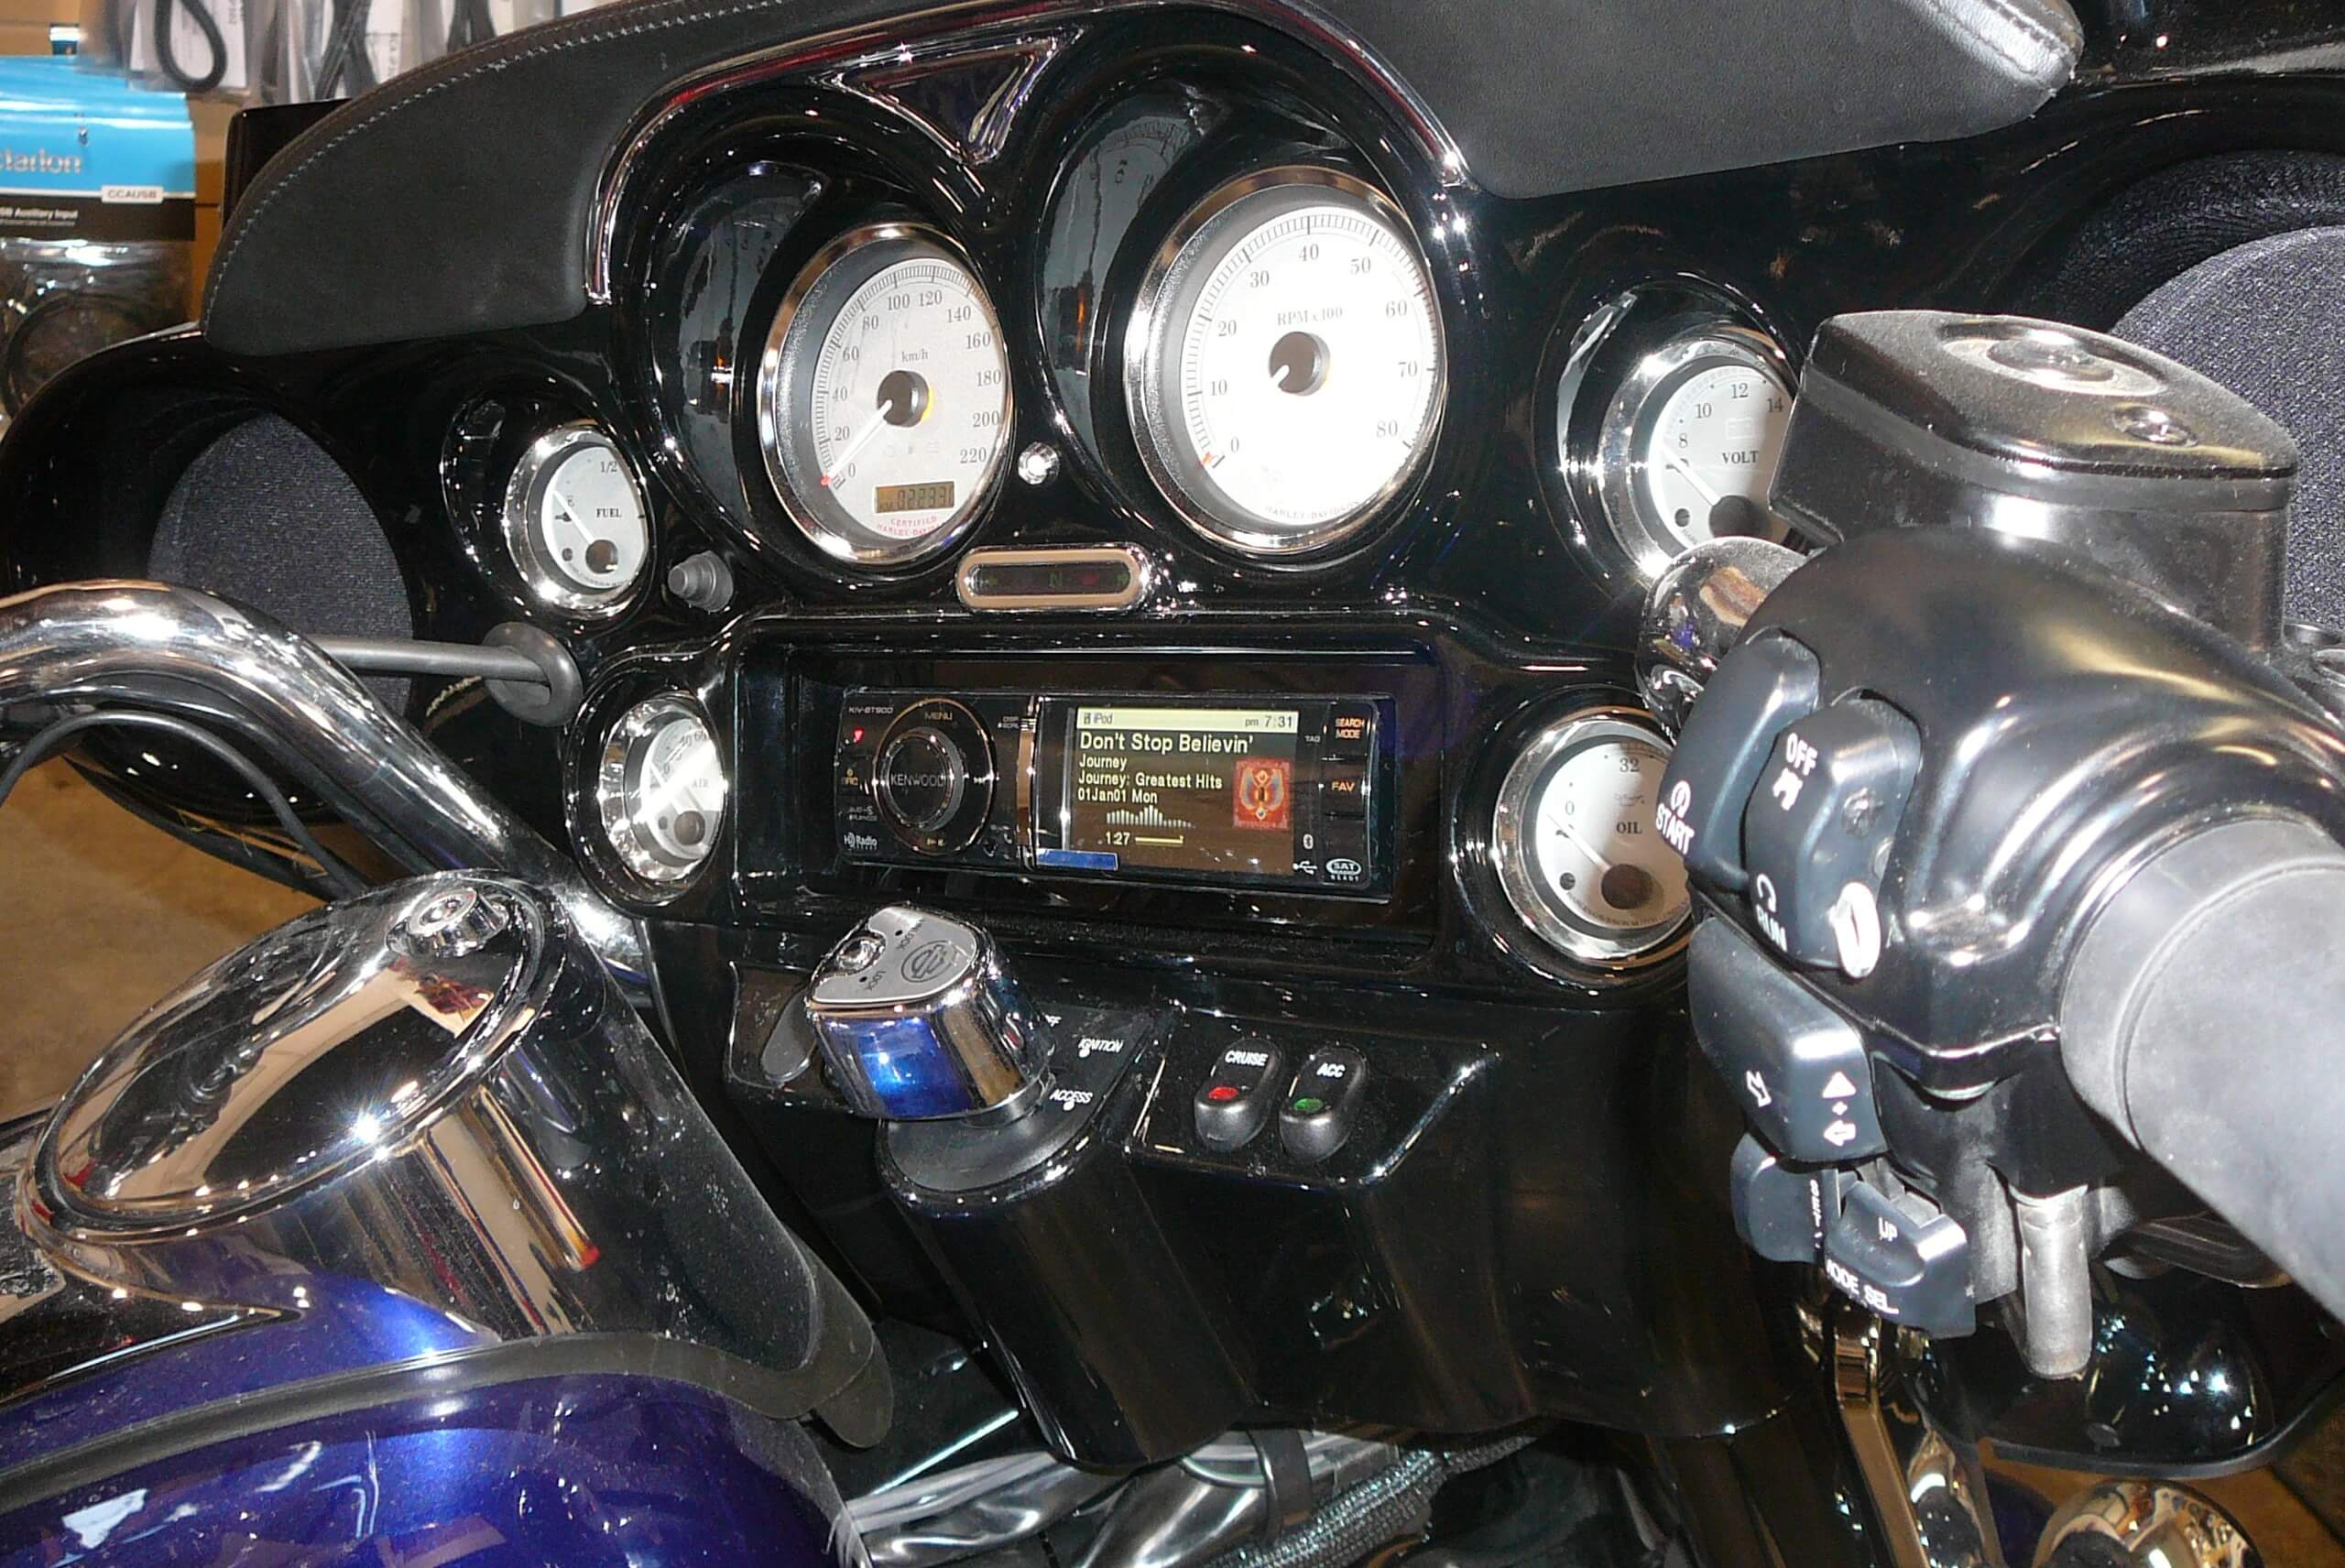 Motorcycle Stereo Upgrades & Speakers for Harley Baggers & more